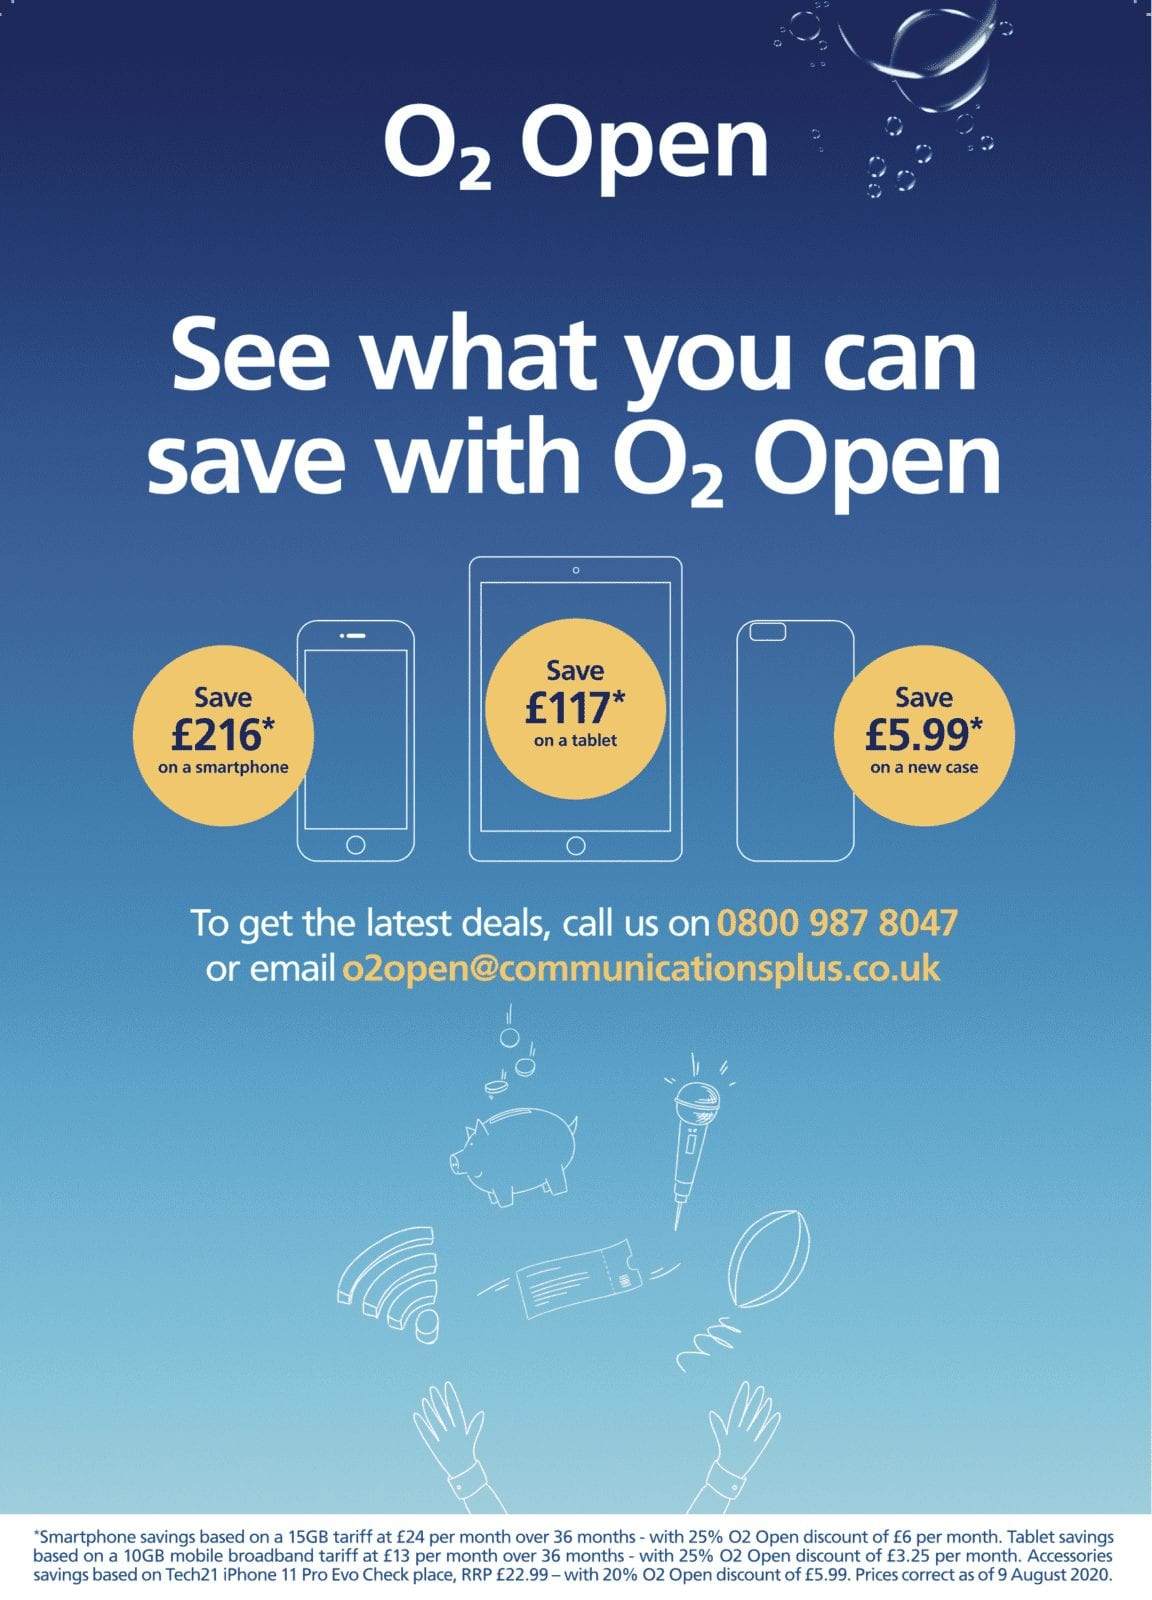 O2 Open Savings Offer